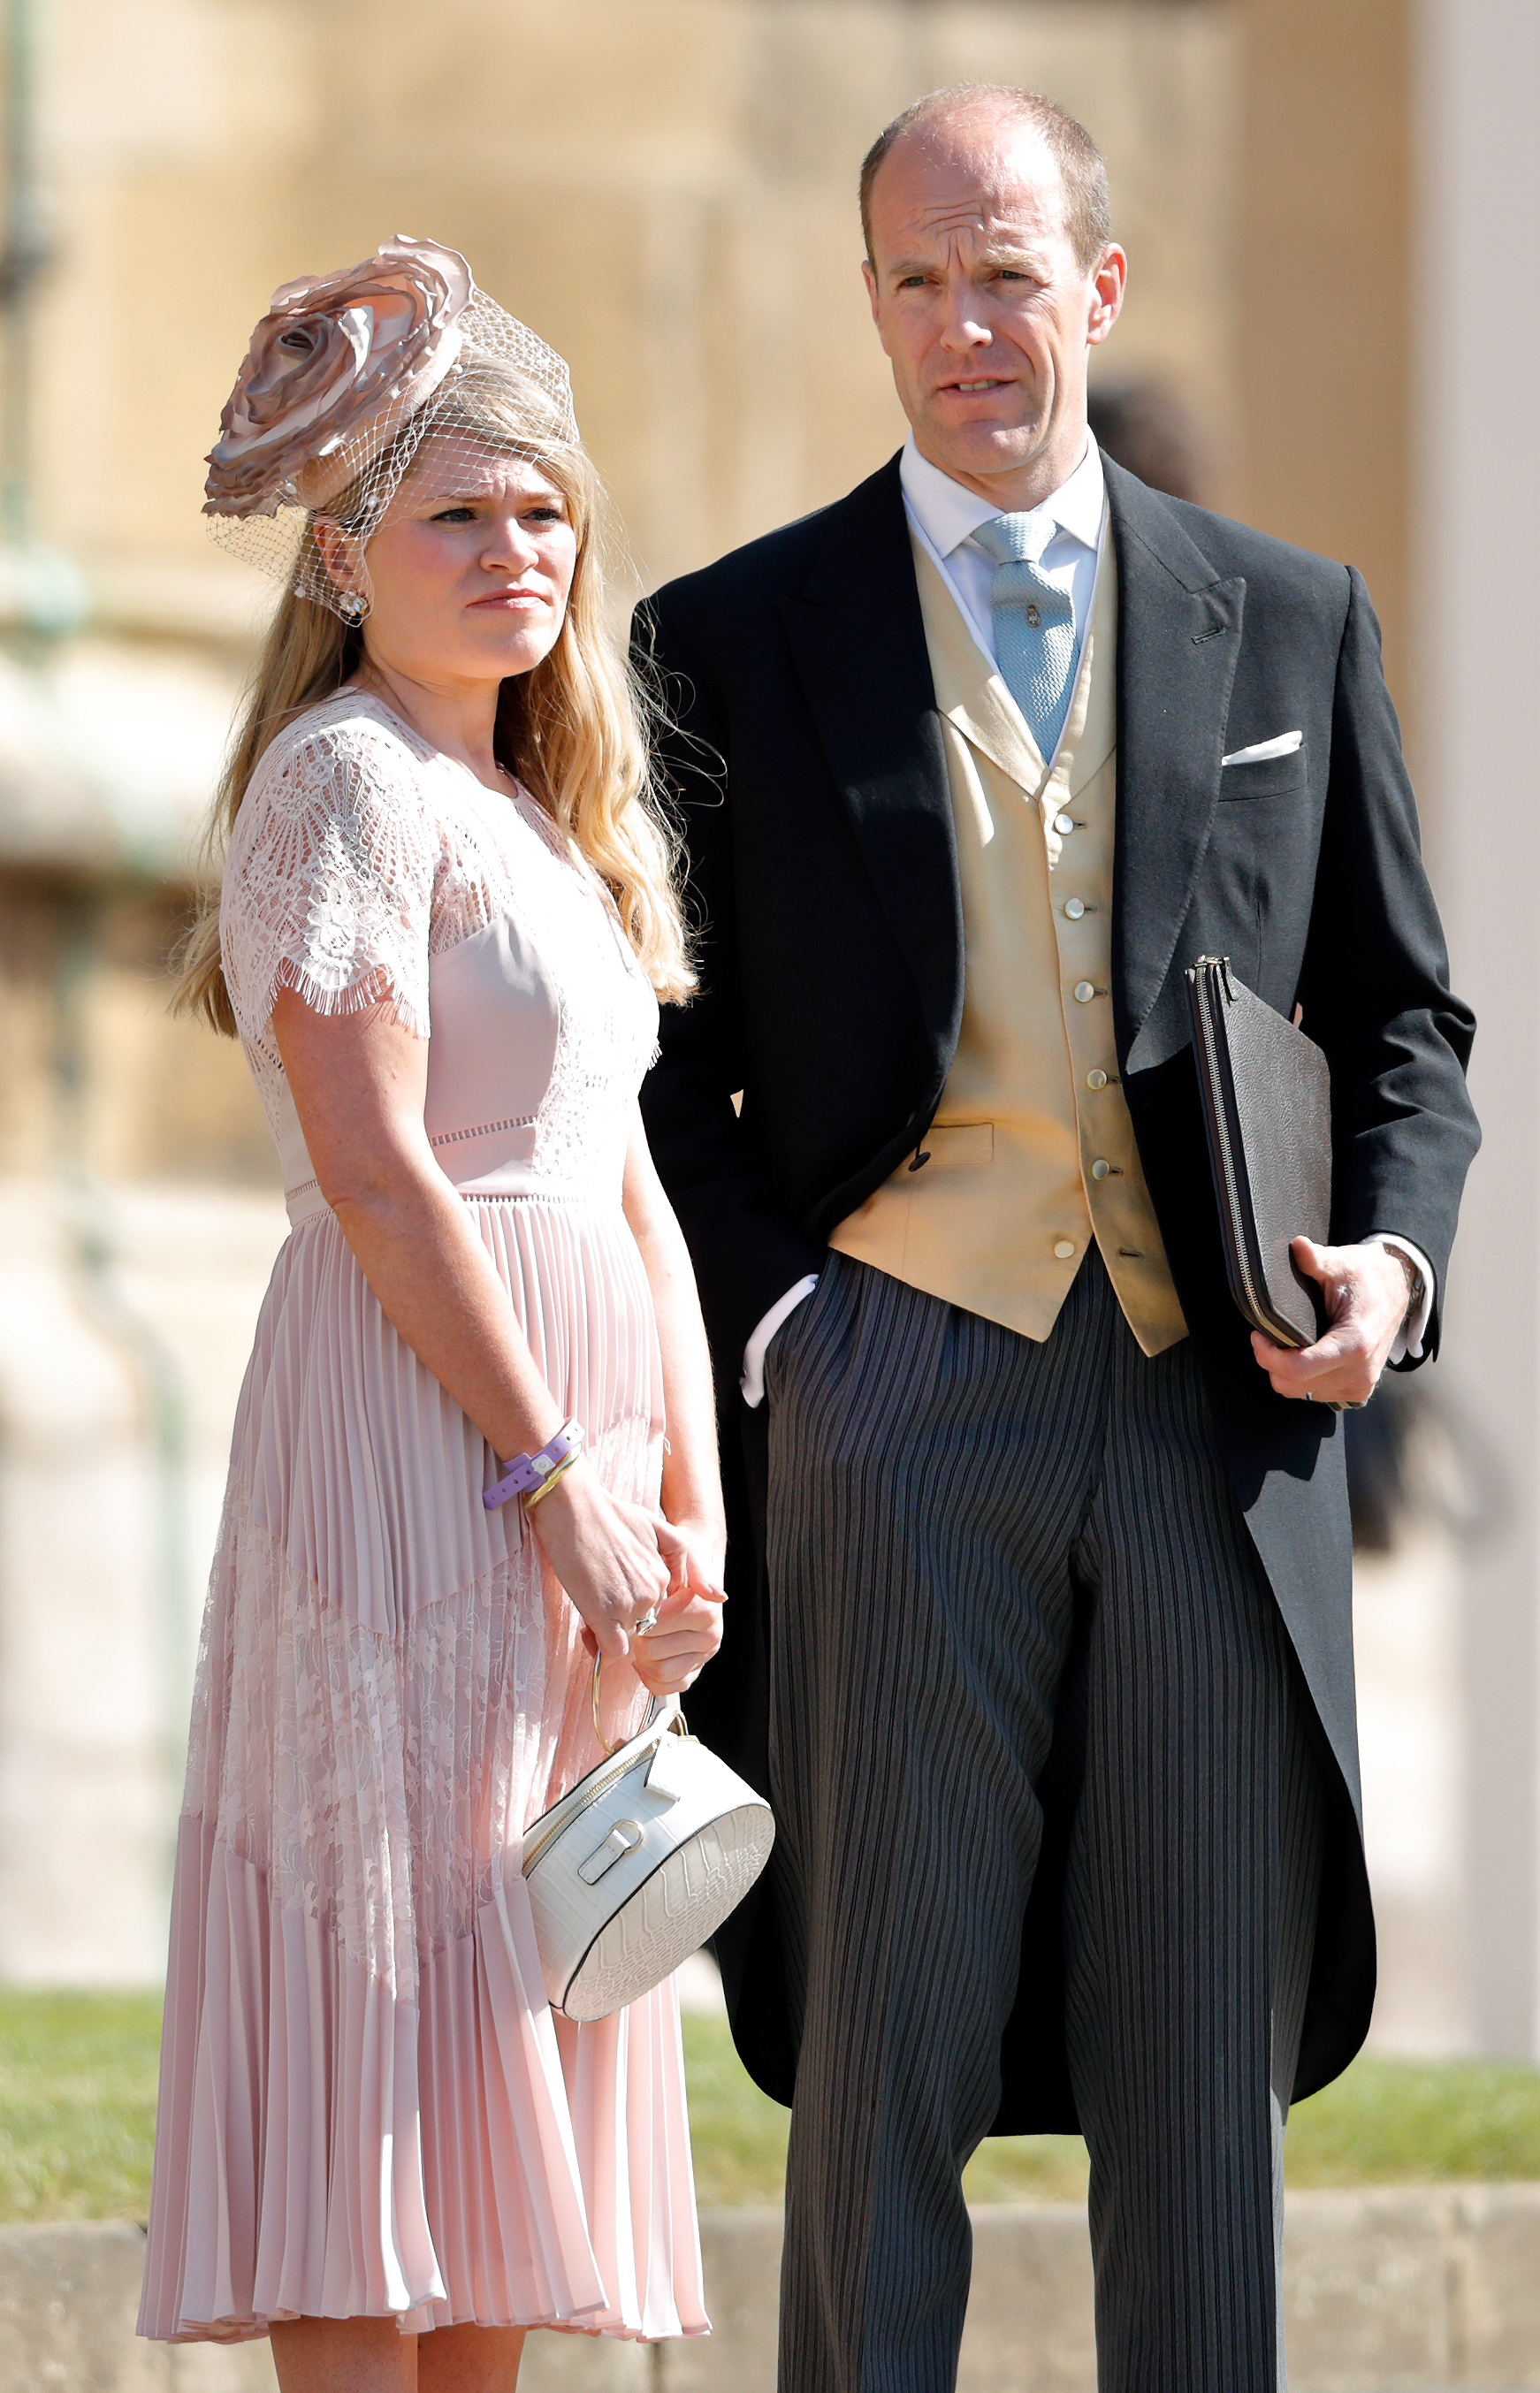 Amy Pickerill and Ed Lane Fox attend the wedding of Prince Harry to Meghan Markle at St George's Chapel, Windsor Castle on May 19, 2018 in Windsor, England. (Photo by Max Mumby/Indigo/Getty Images)